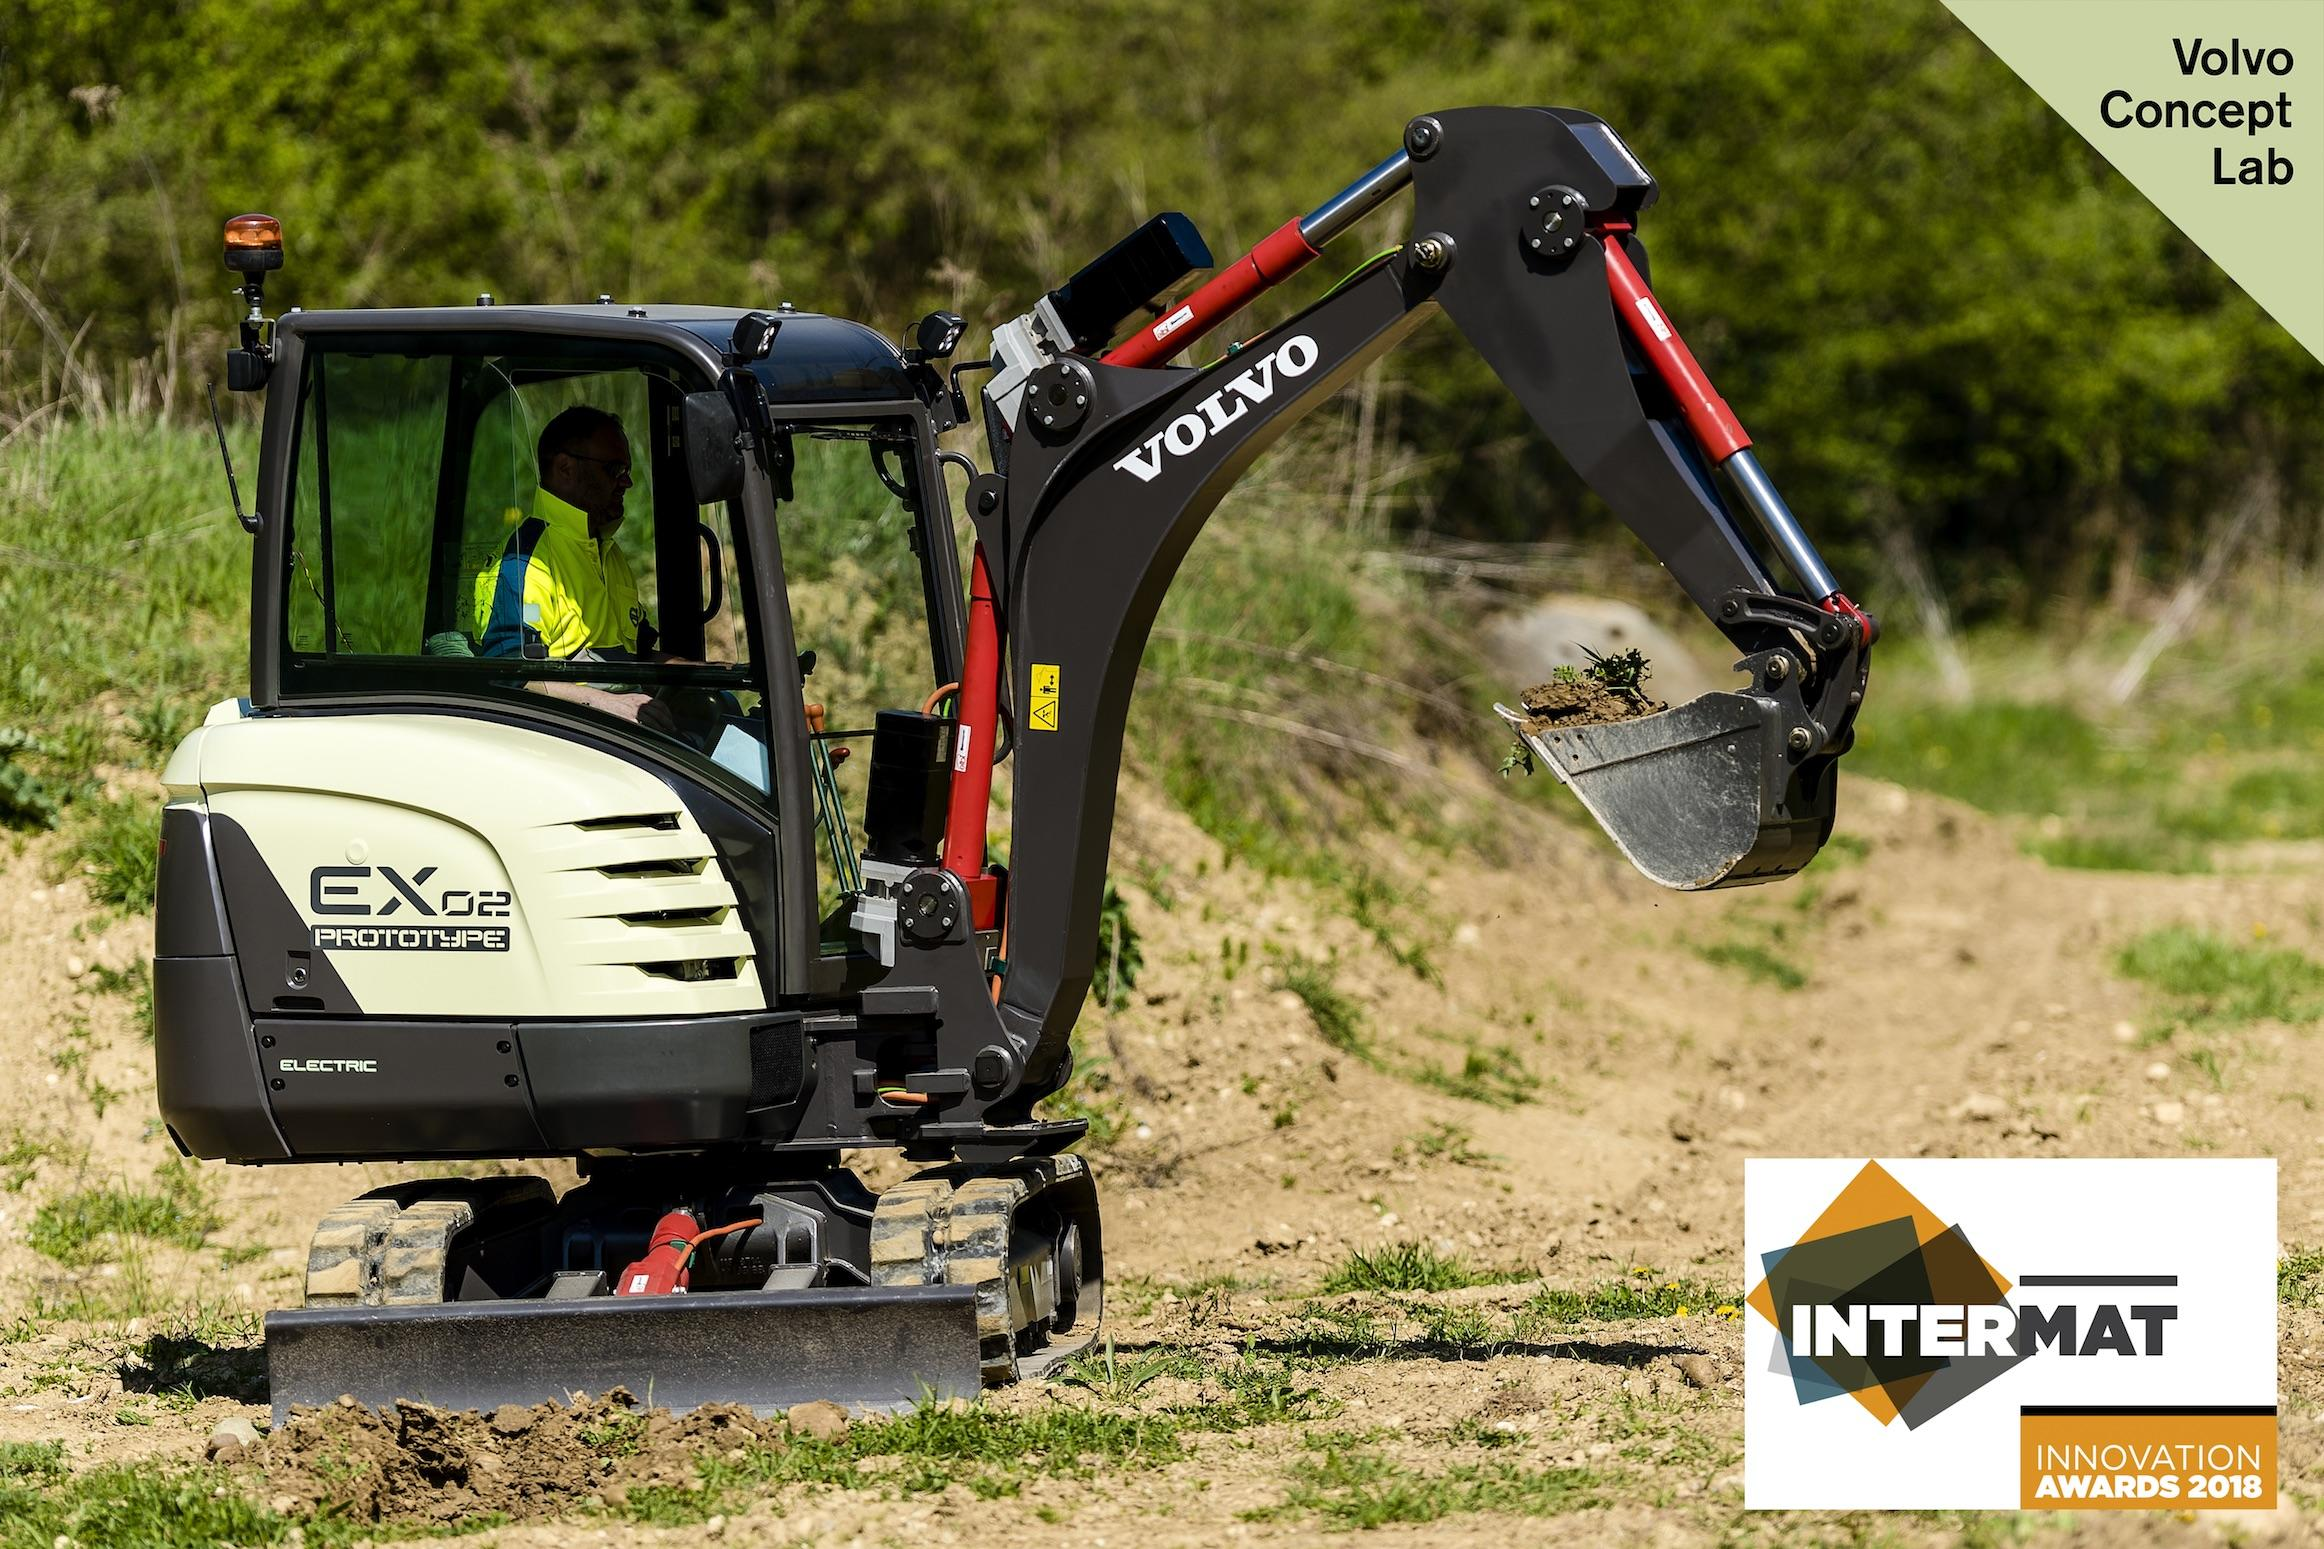 EX2 wint INTERMAT Innovation Award